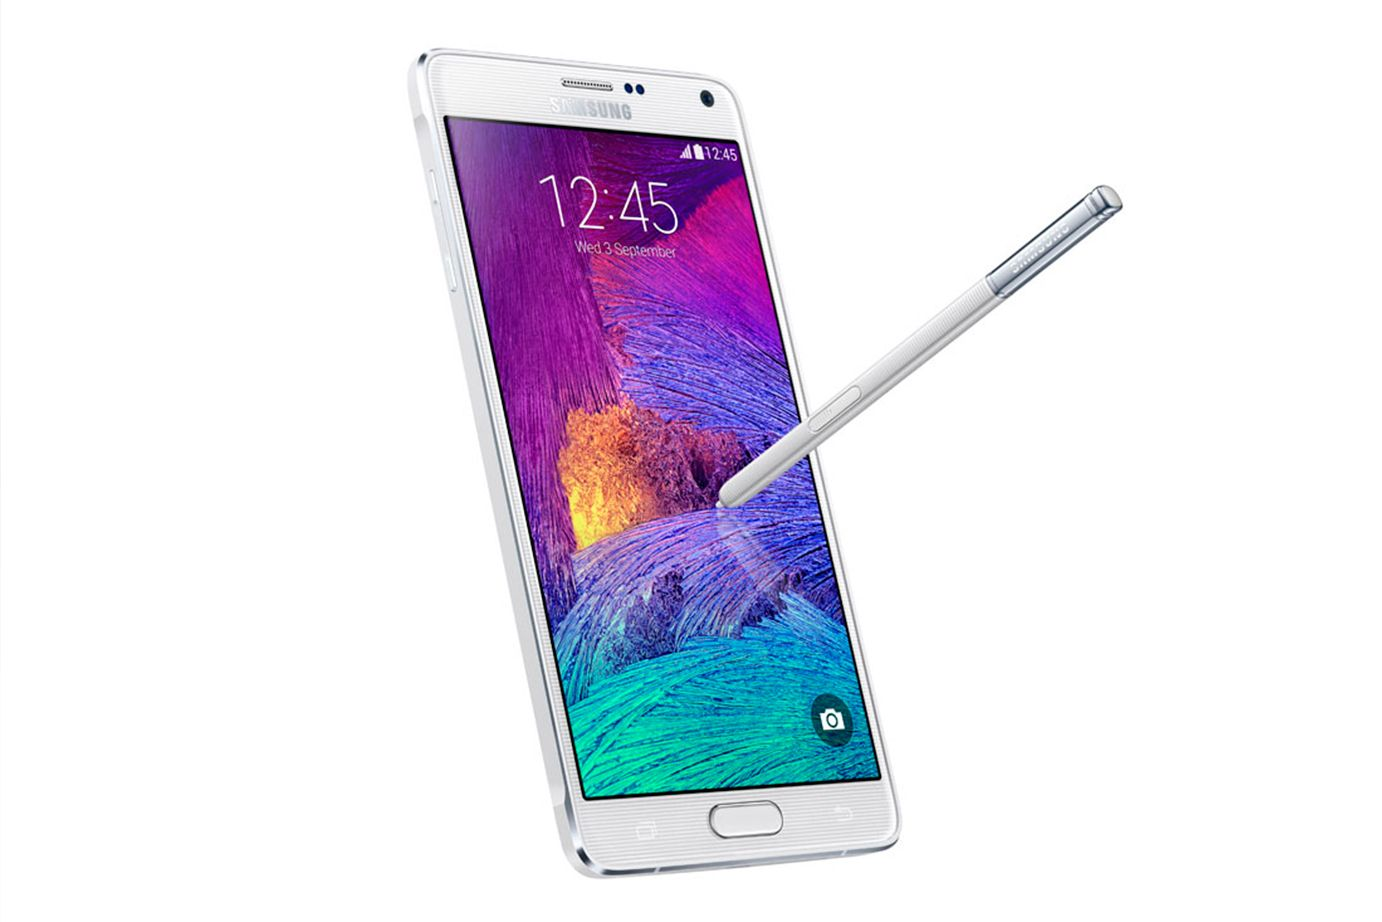 galaxy note 4 verizon ota update